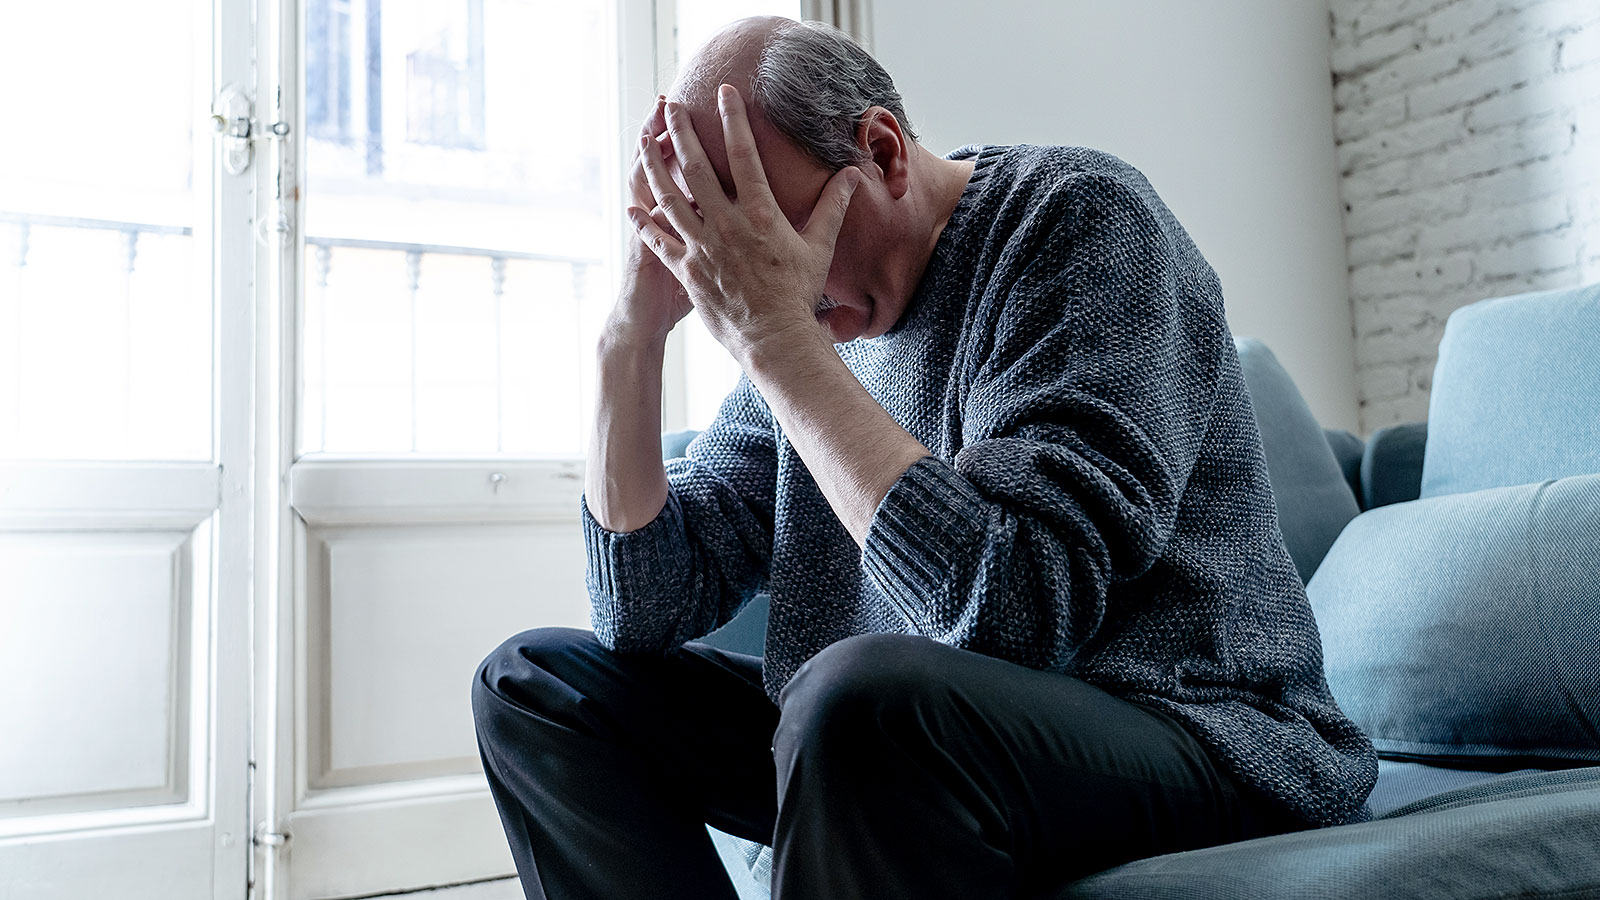 There are more and more cases of suicide in older generations